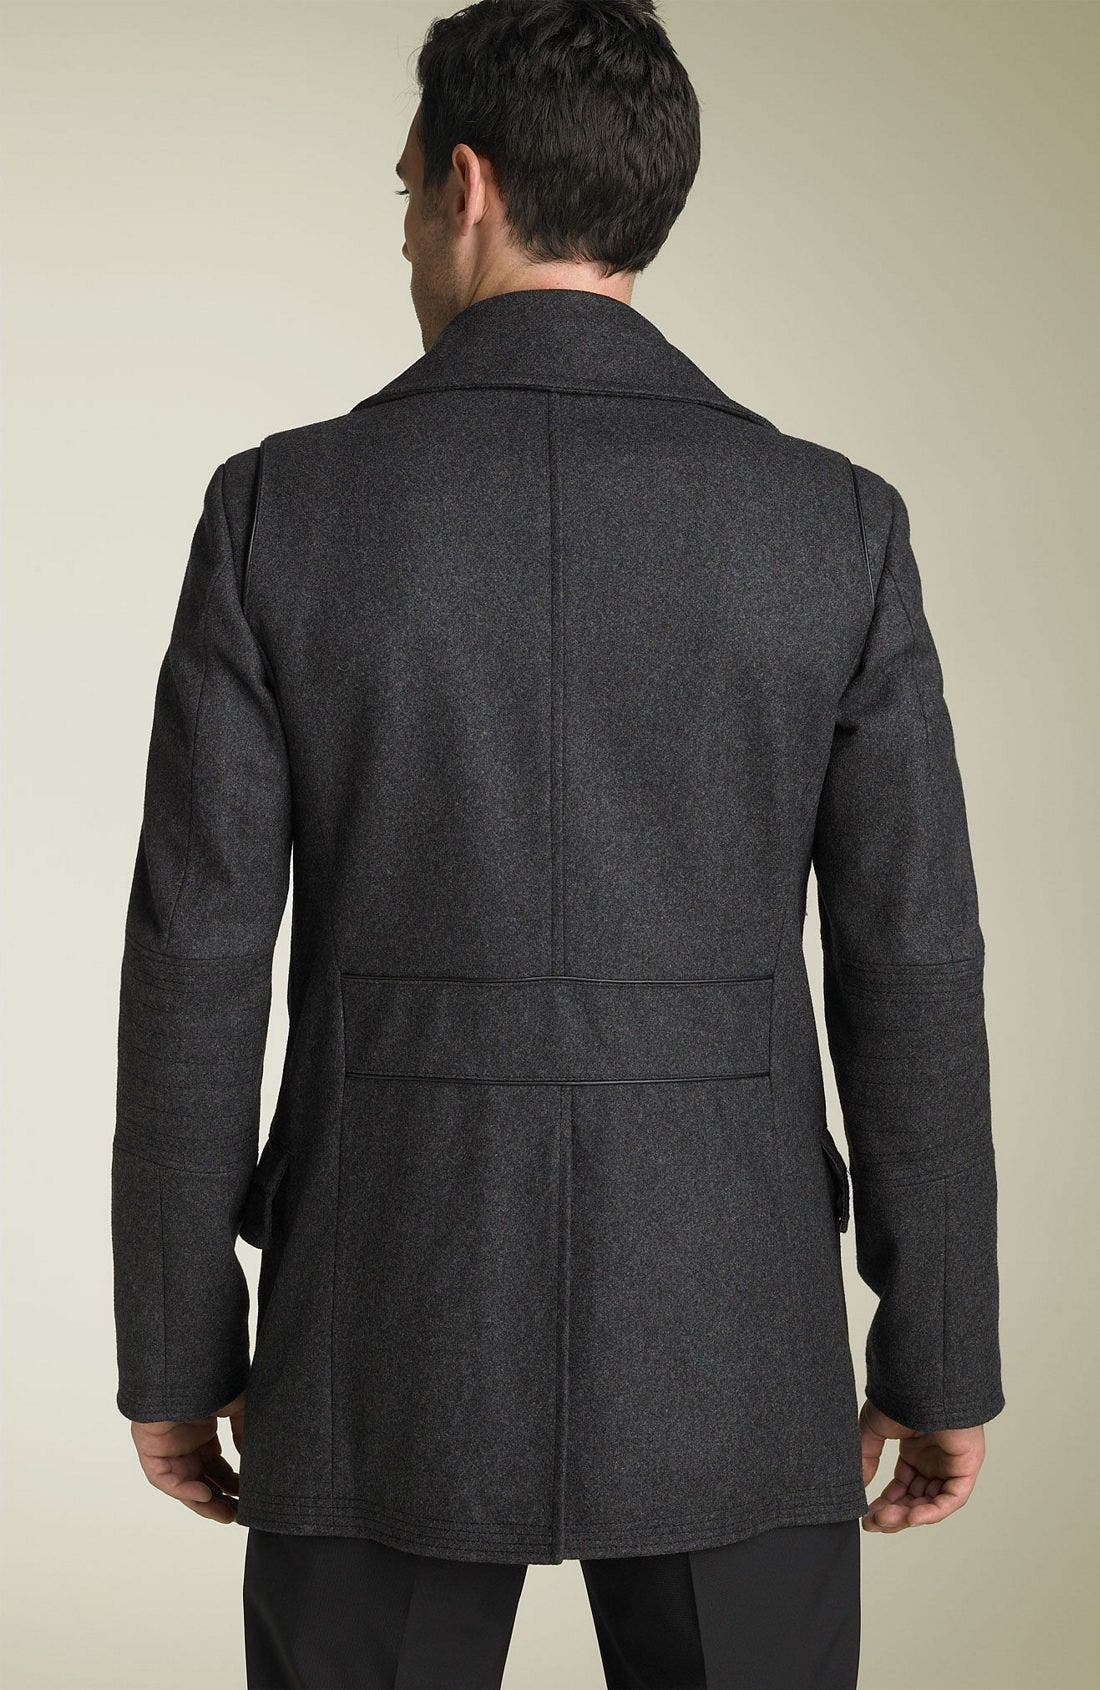 VERSACE,                             Collection Wool Peacoat,                             Alternate thumbnail 2, color,                             020